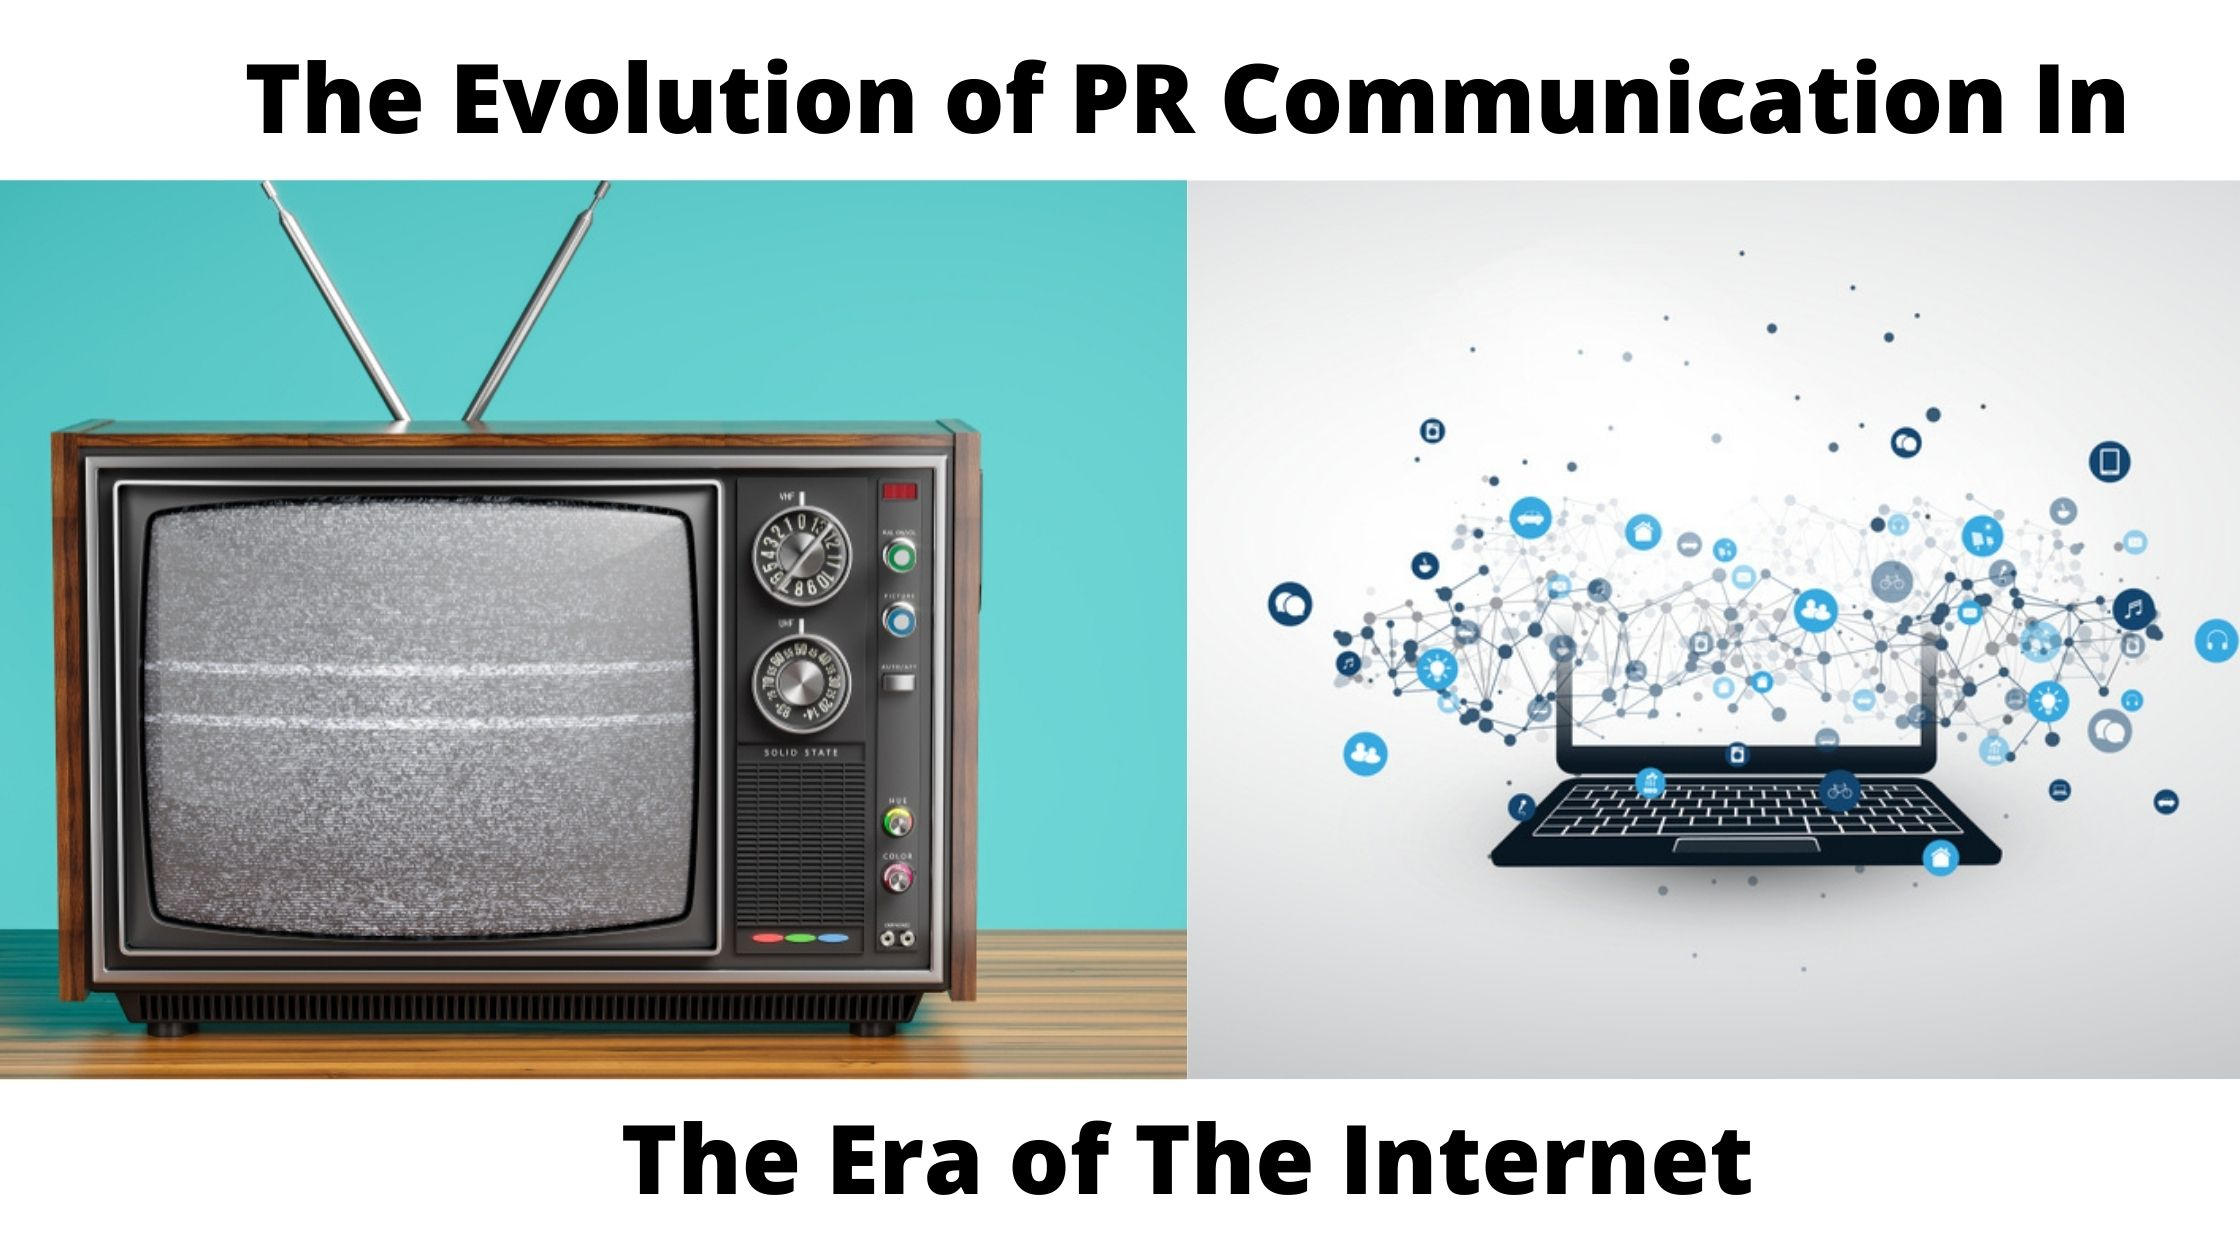 The Evolution of PR Communication In The Era of The Internet